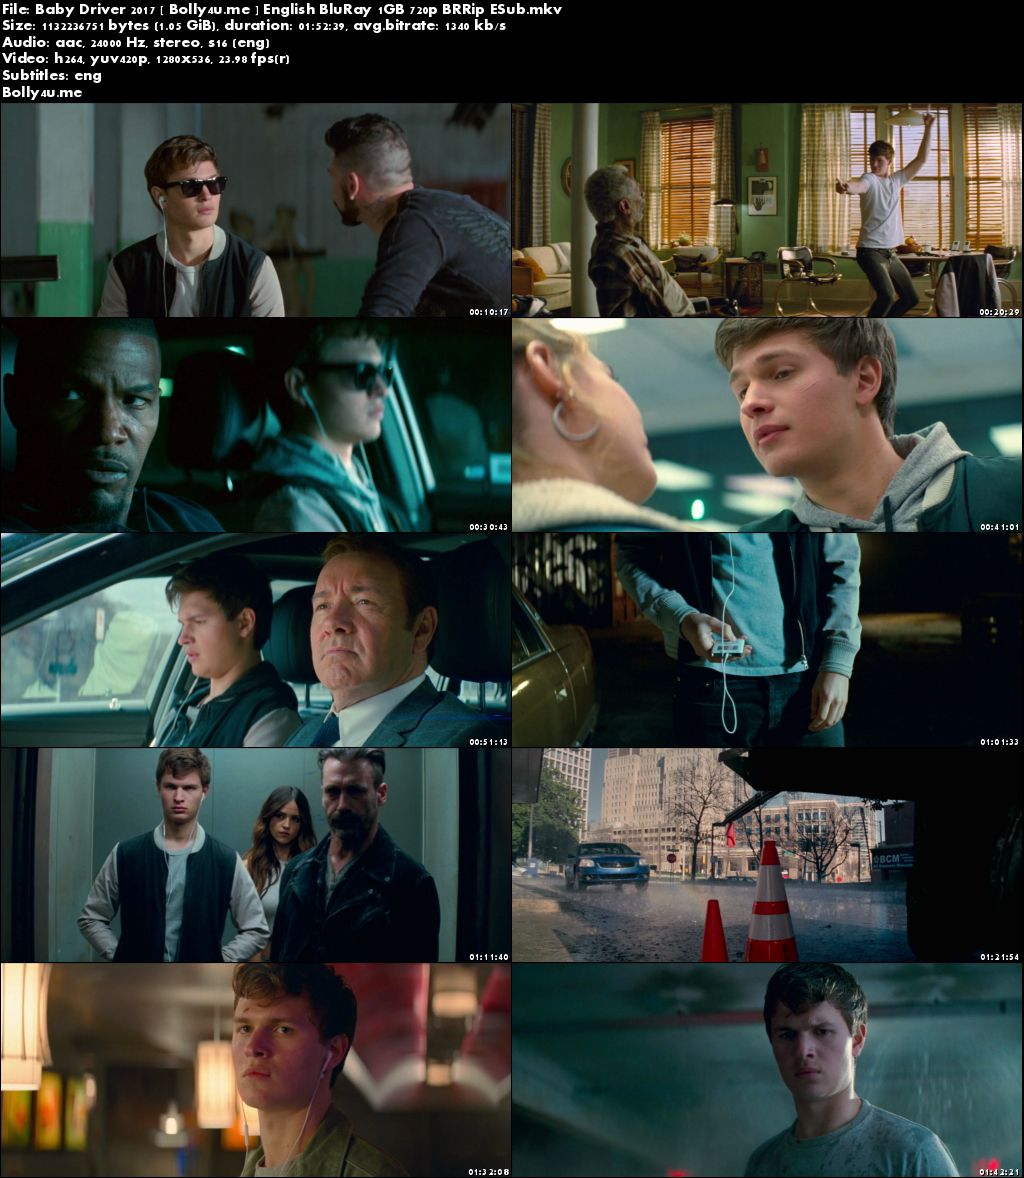 Baby Driver 2017 BluRay 1GB Full English Movie Download 720p ESub